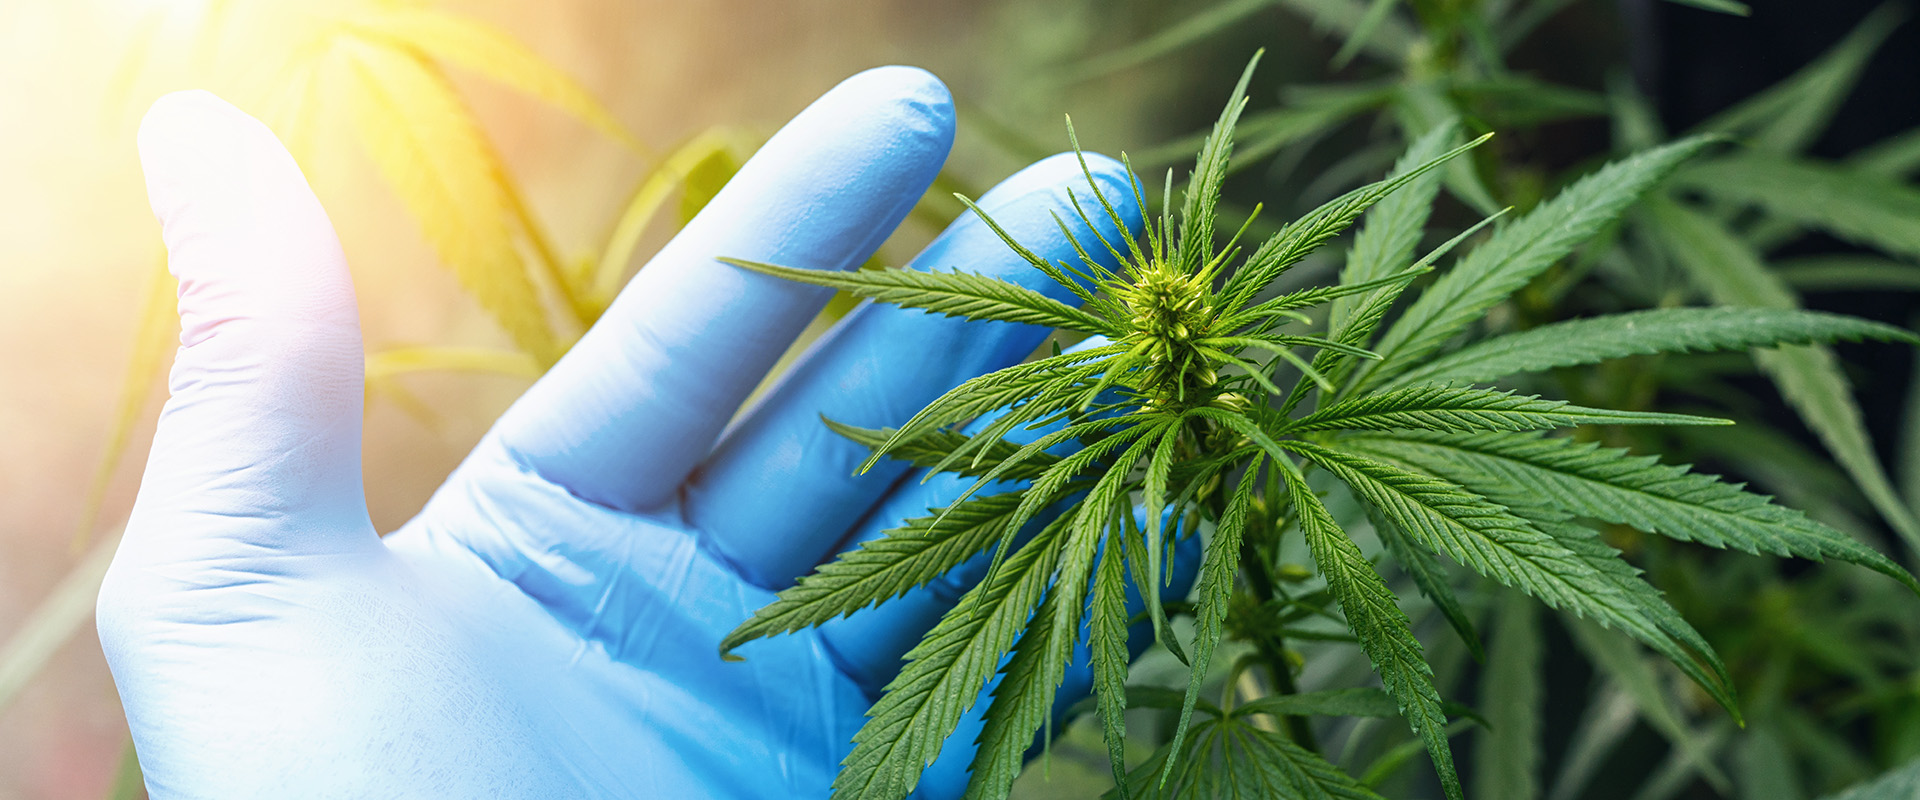 large number of cannabis flowers the hands of Medetsinsky employ